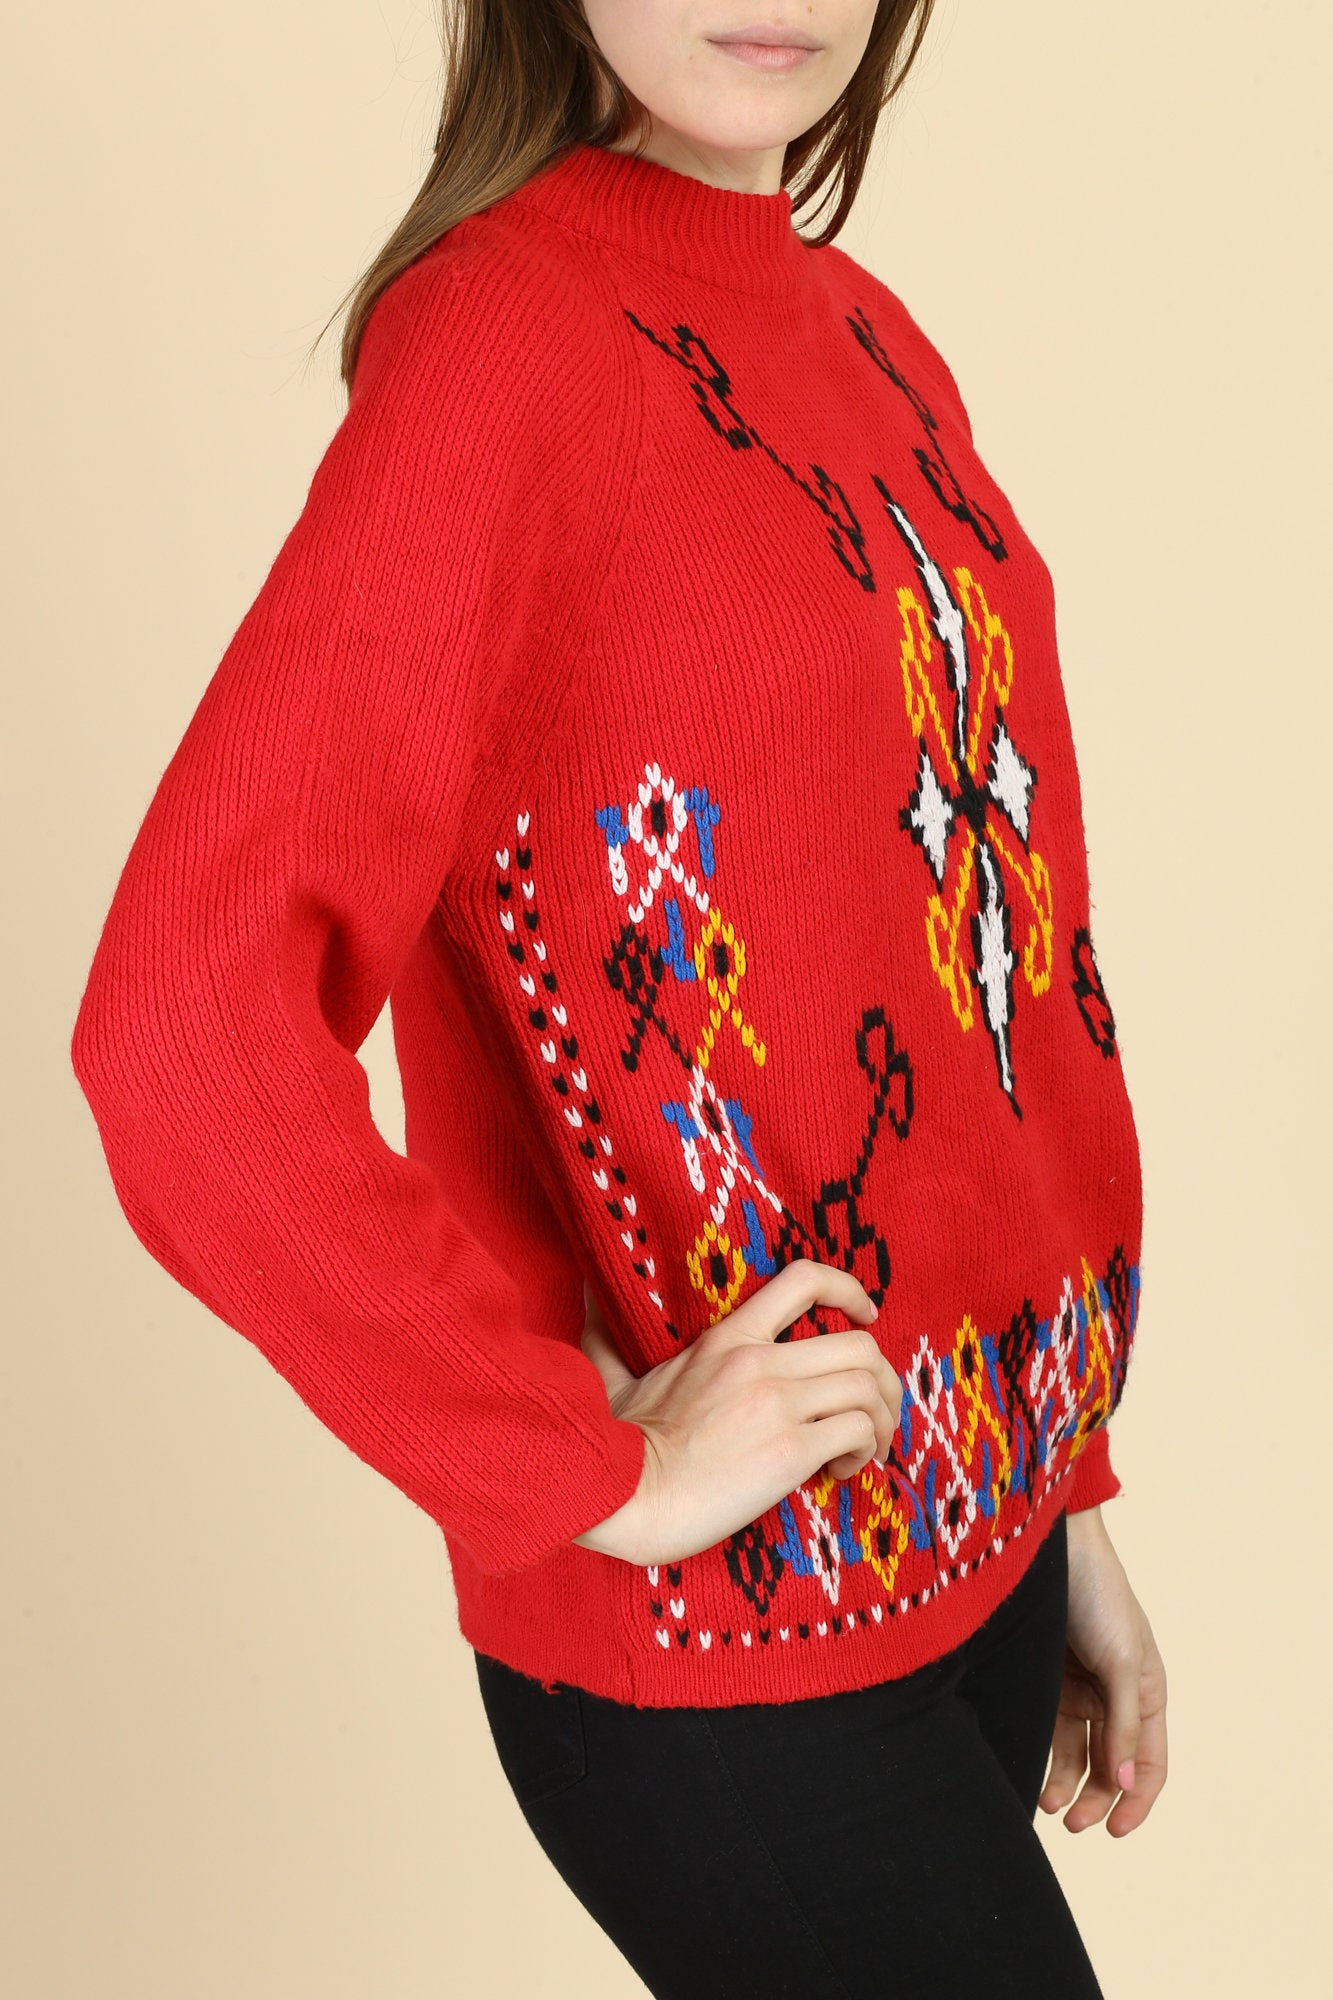 Vintage 70s Red Knit Sweater - Medium